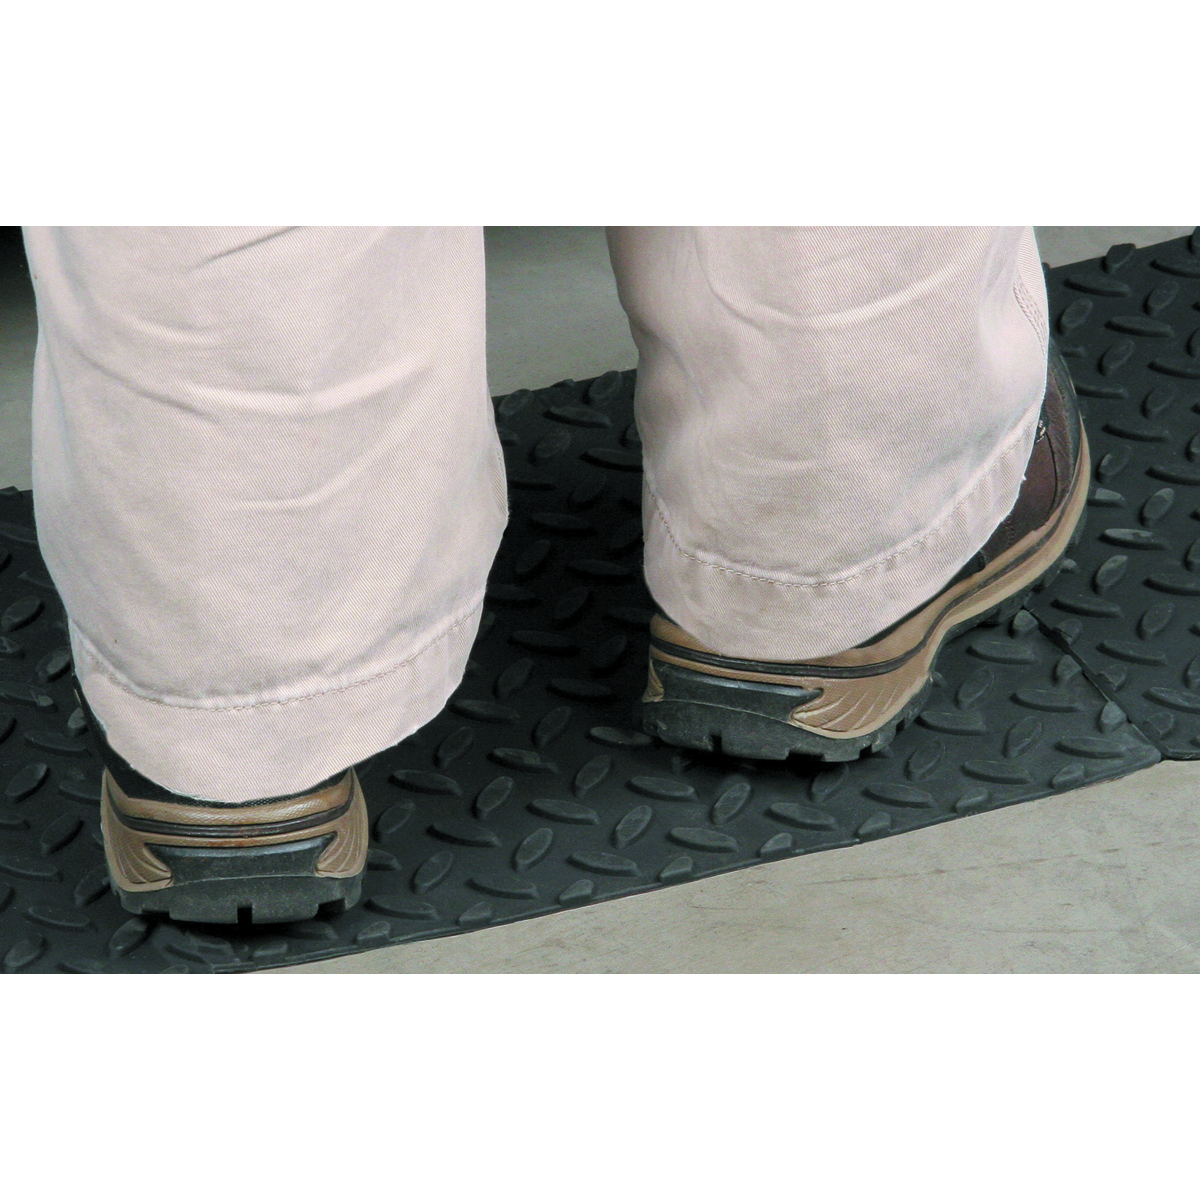 WESTERN SAFETY 12 in. x 12 in. Self-Adhesive Rubber Safety Mat with Tread Surface - Item 98858 ...